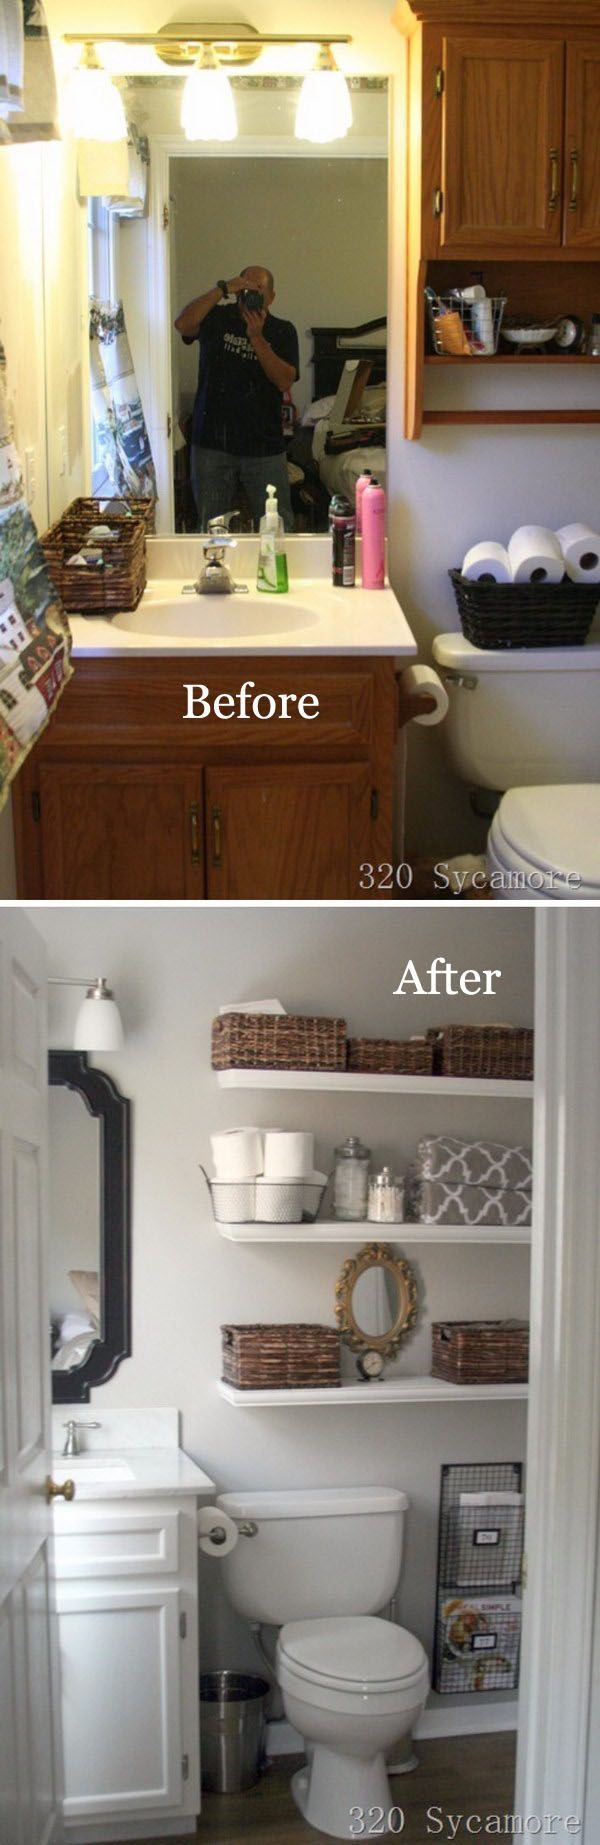 Tiny Bathroom Ideas brilliant bathroom decorating ideas for small bathrooms storage